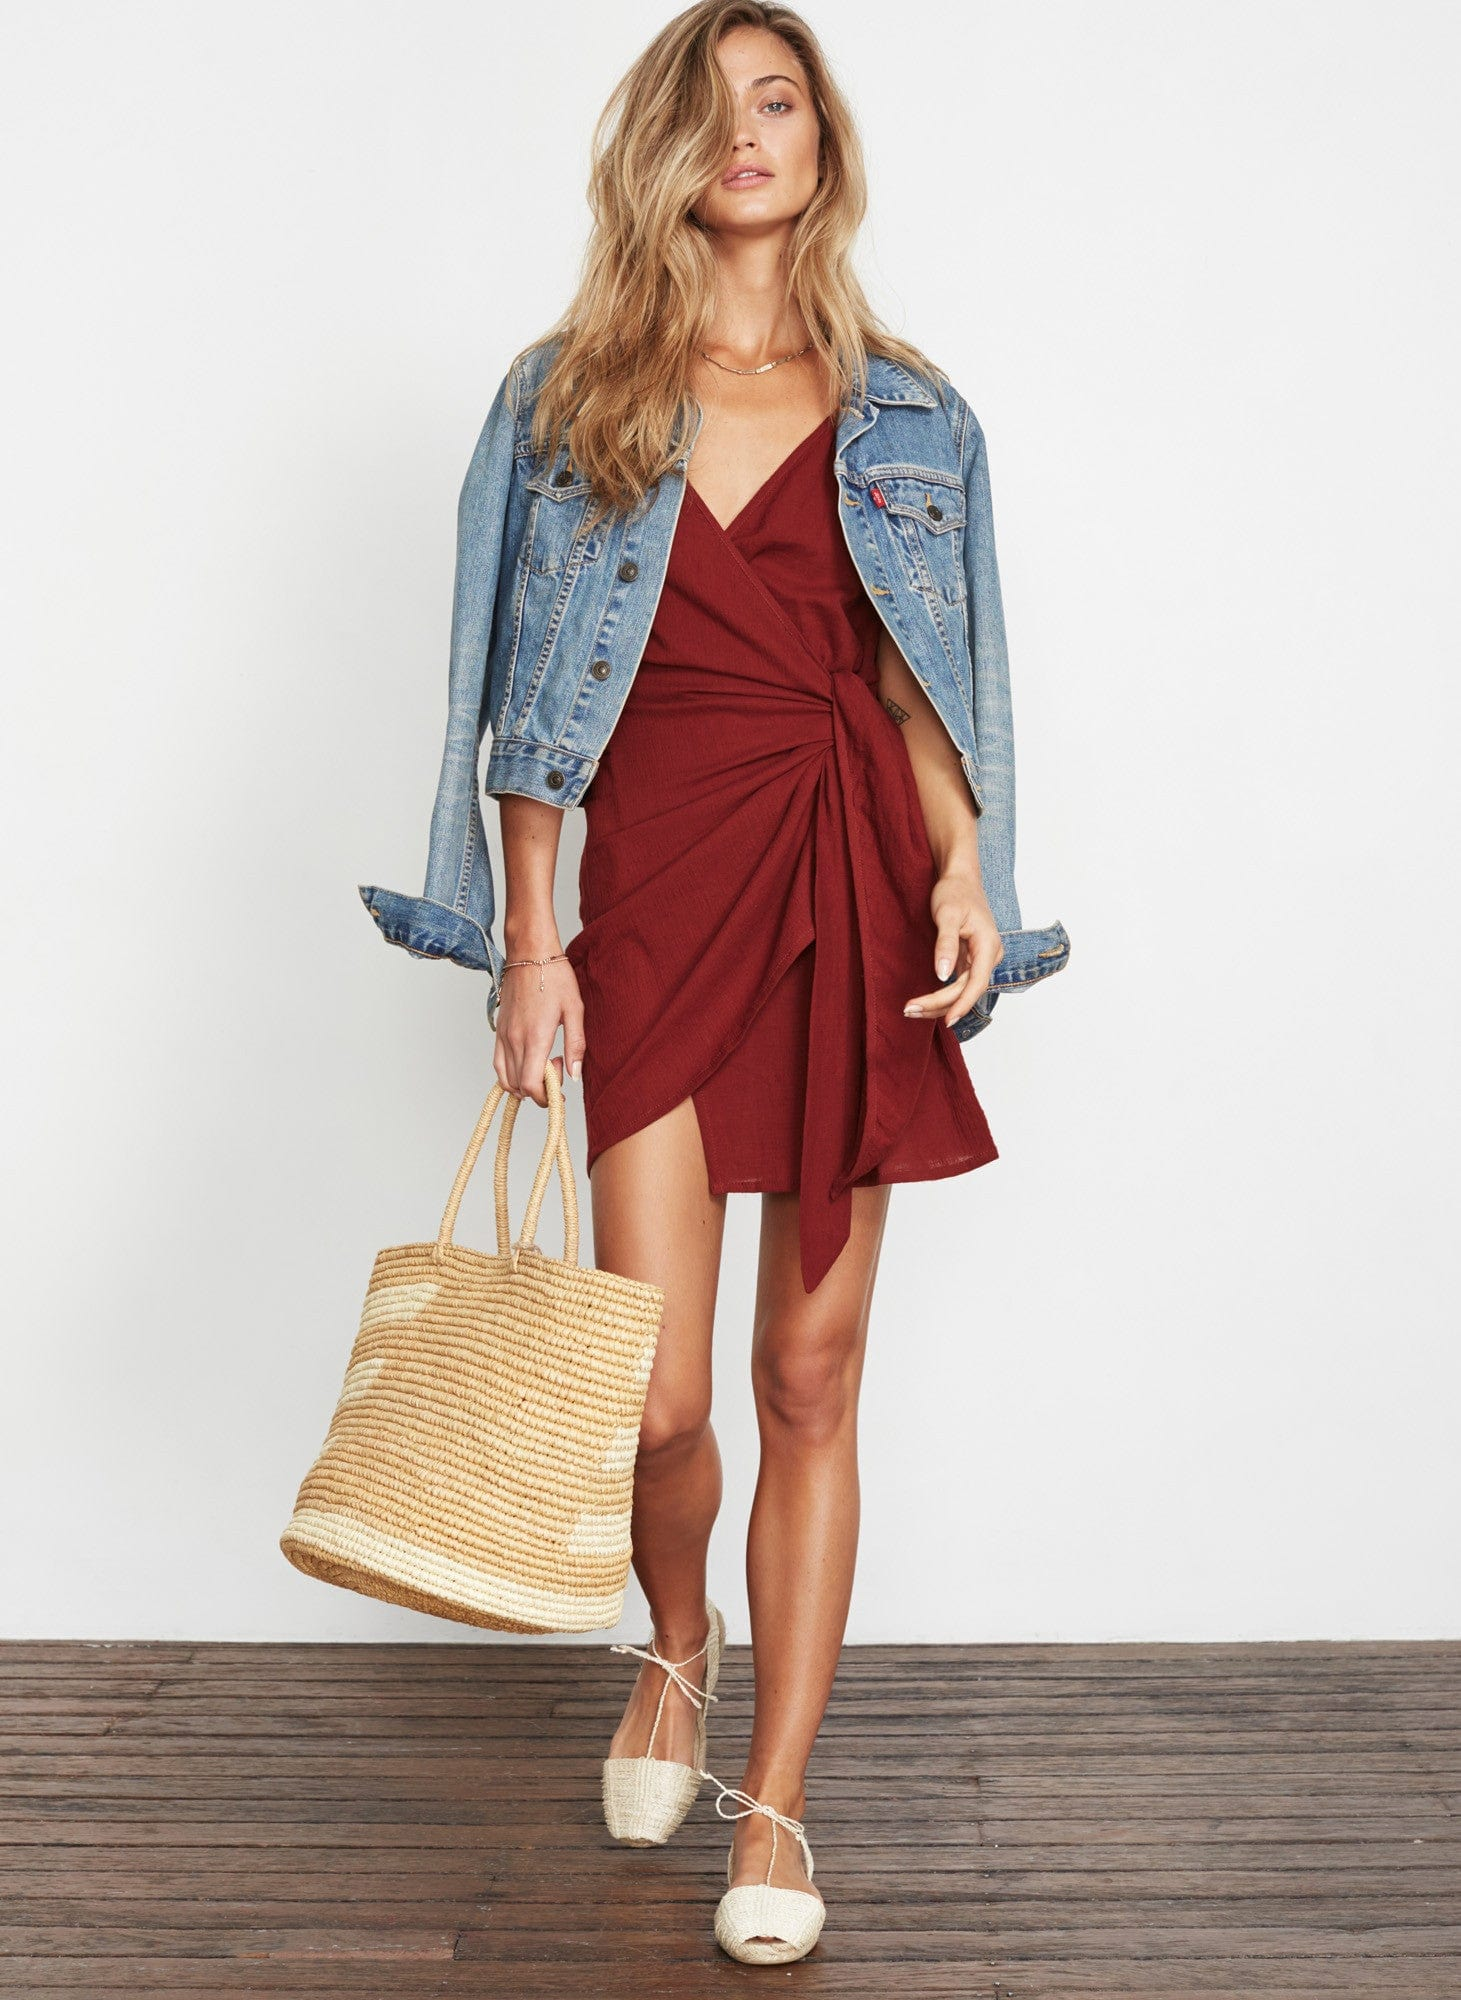 PLAIN AMBER - KARA WRAP DRESS